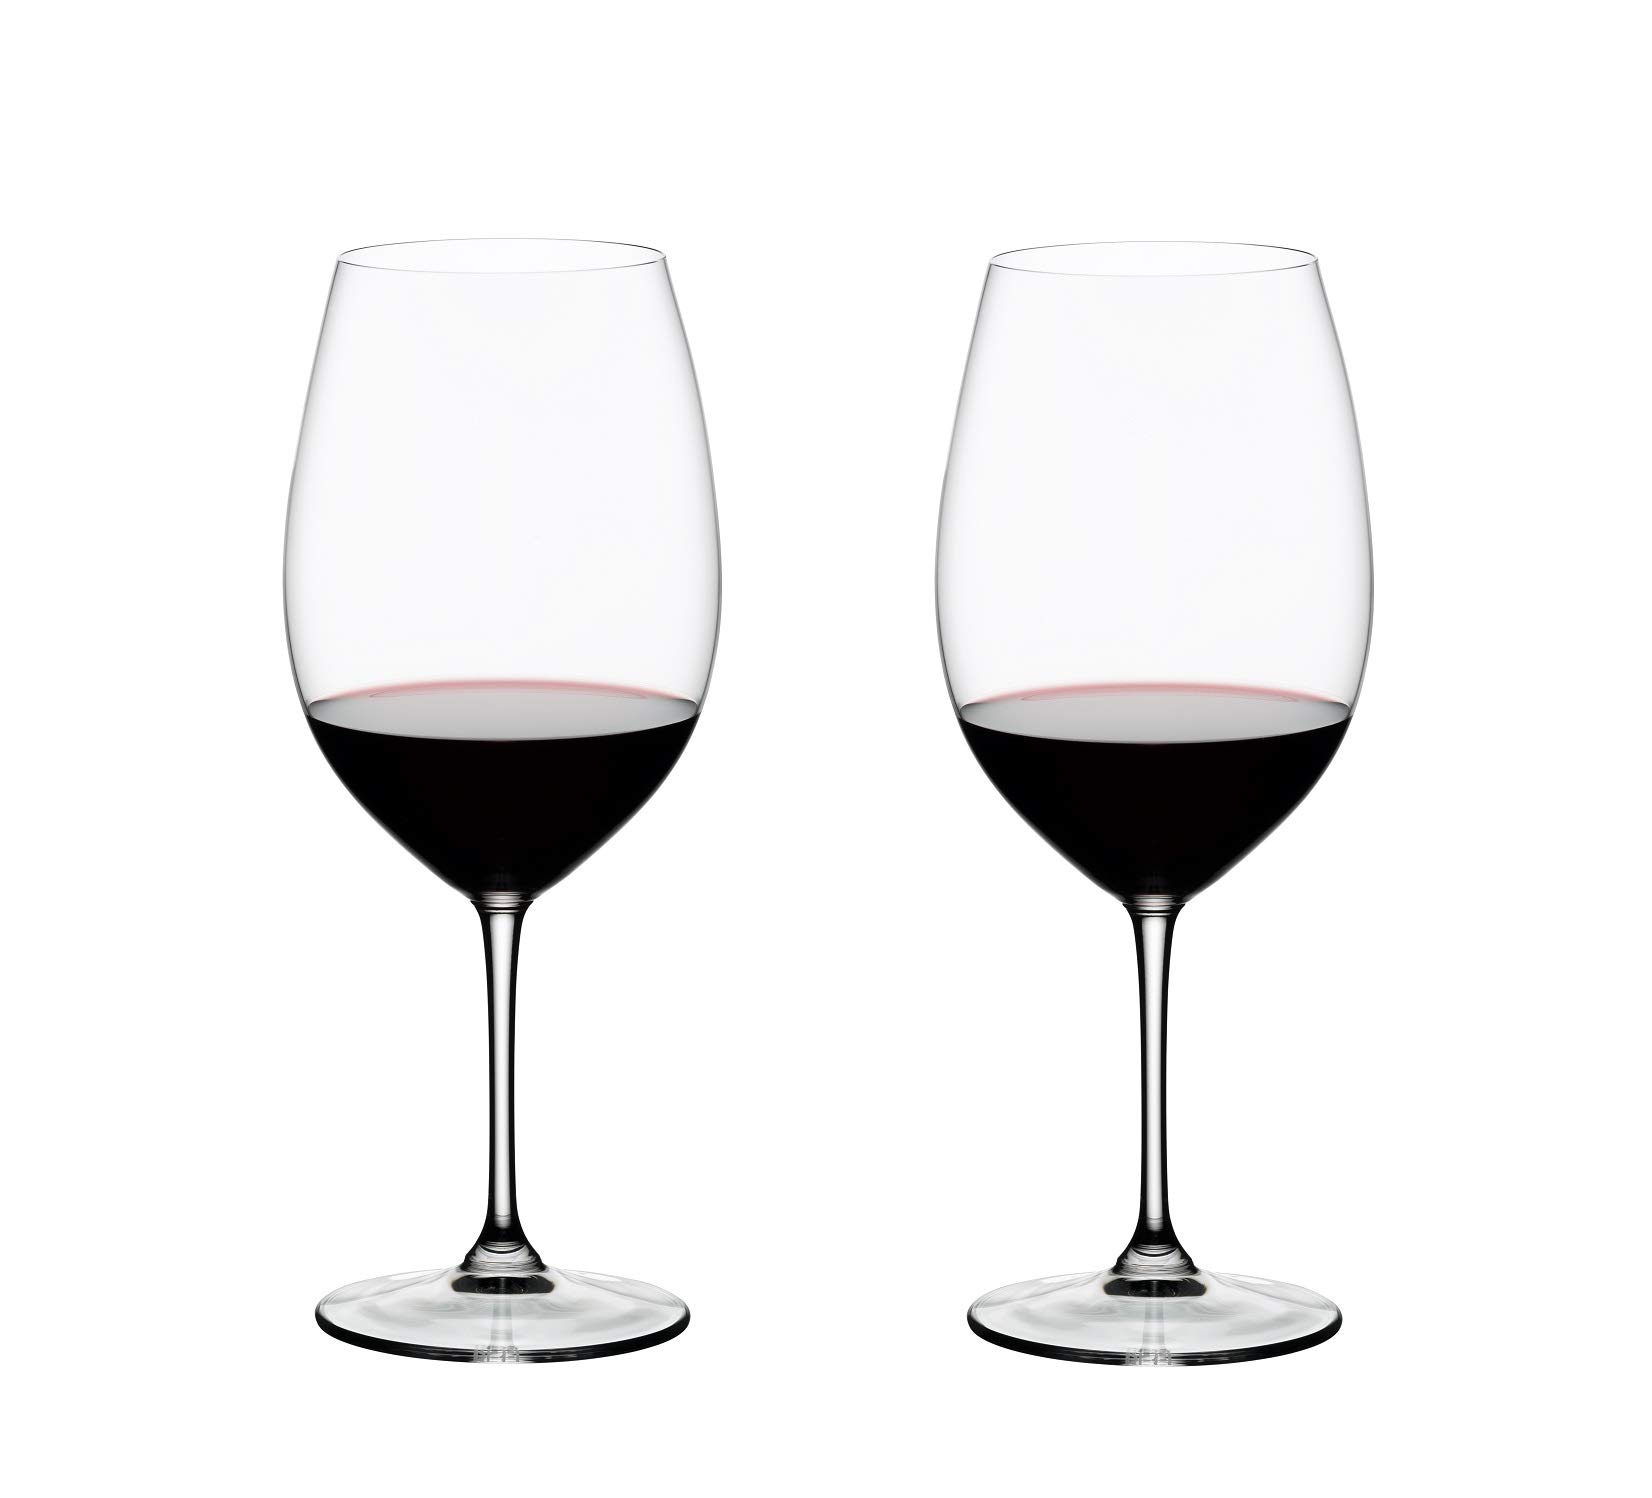 Riedel Vinum XL Cabernet Sauvignon Set of 2 by Riedel